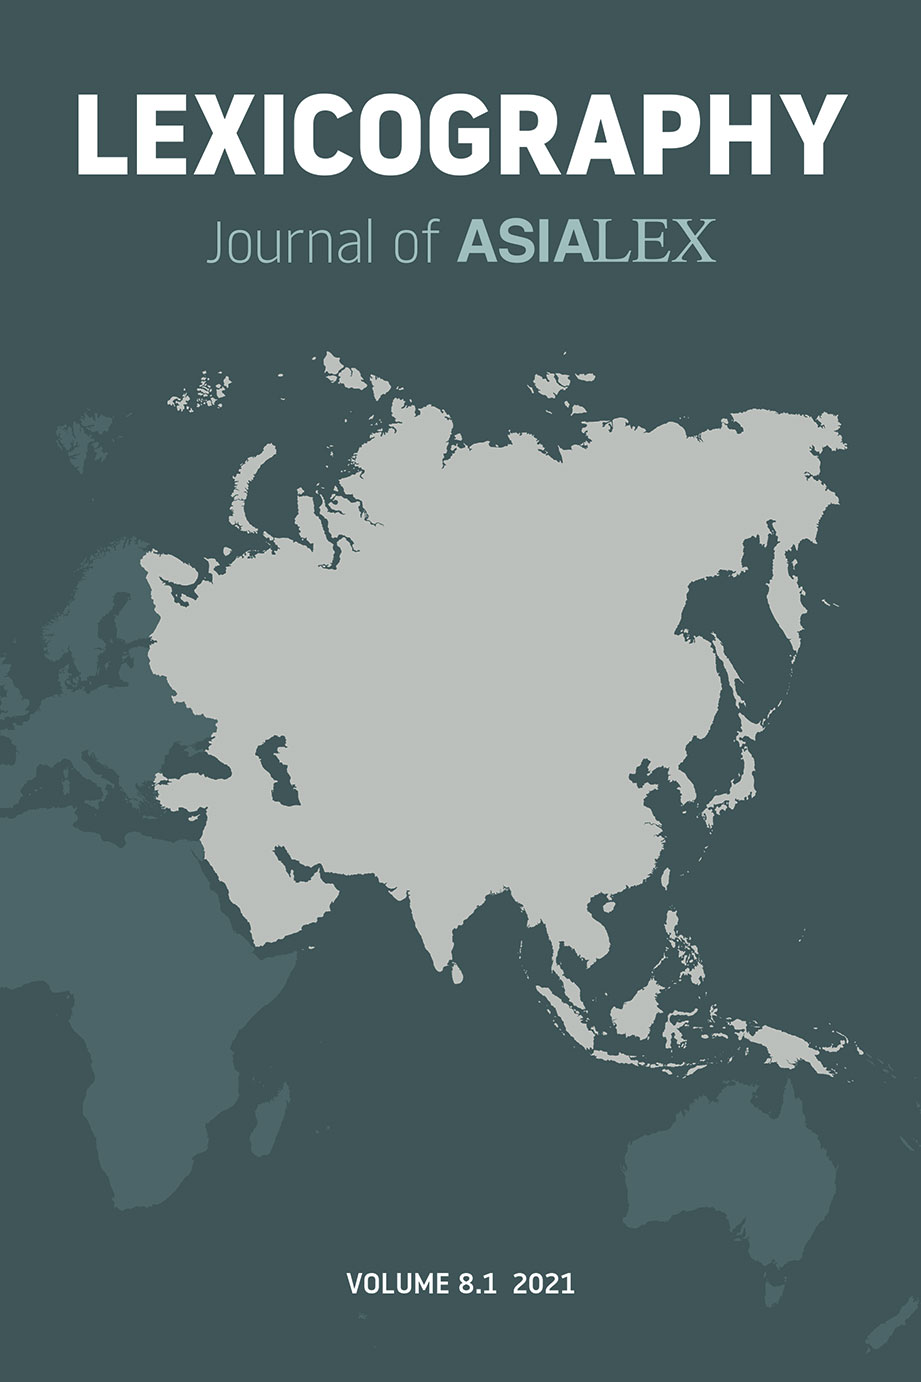 Lexicography: Journal of ASIALEX